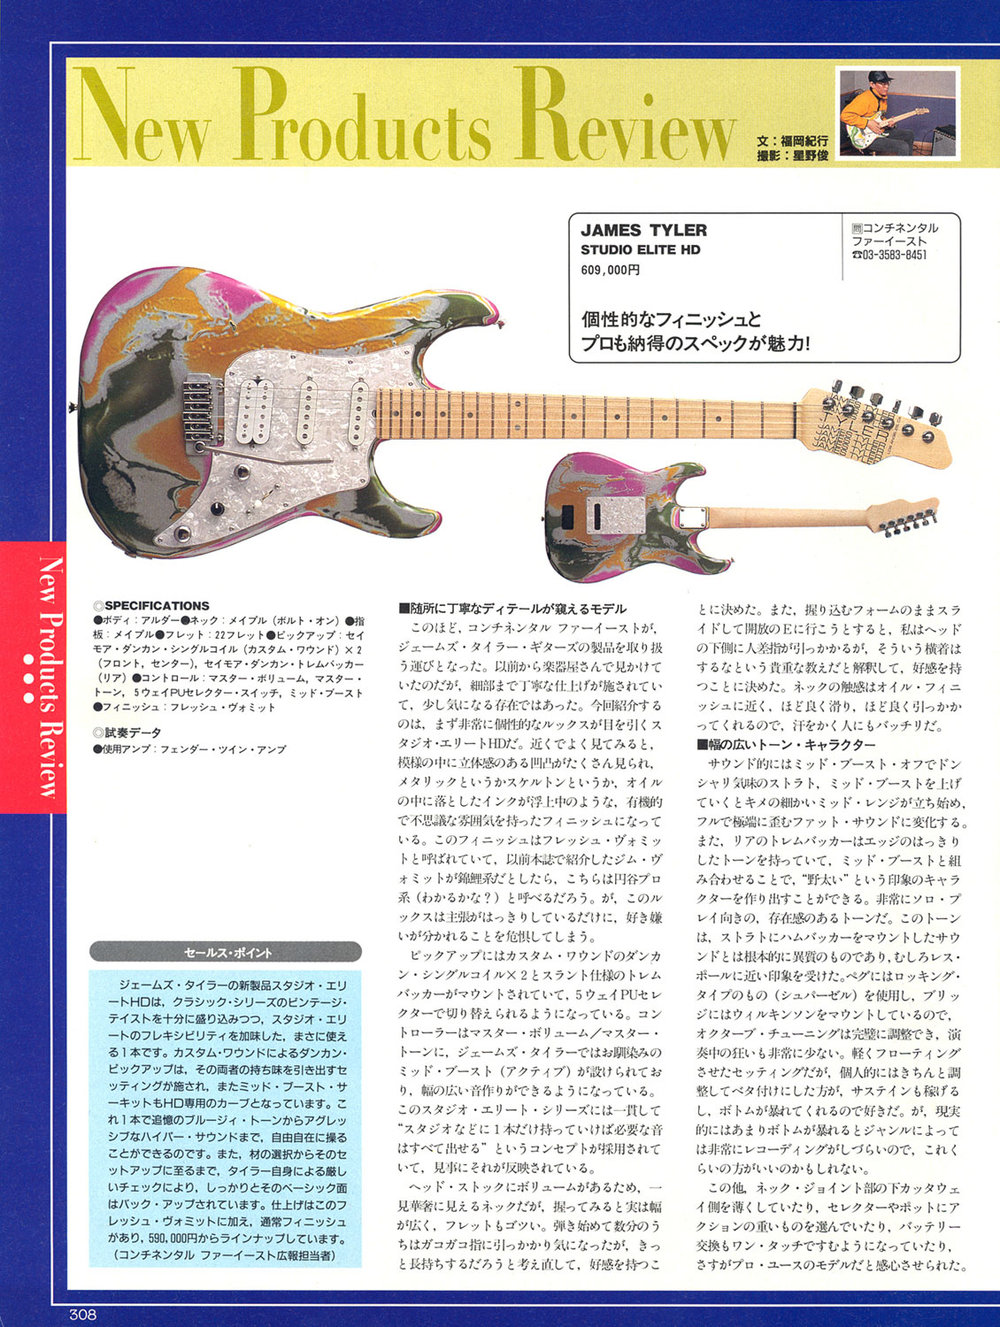 1999 Guitar Magazine - Jan.